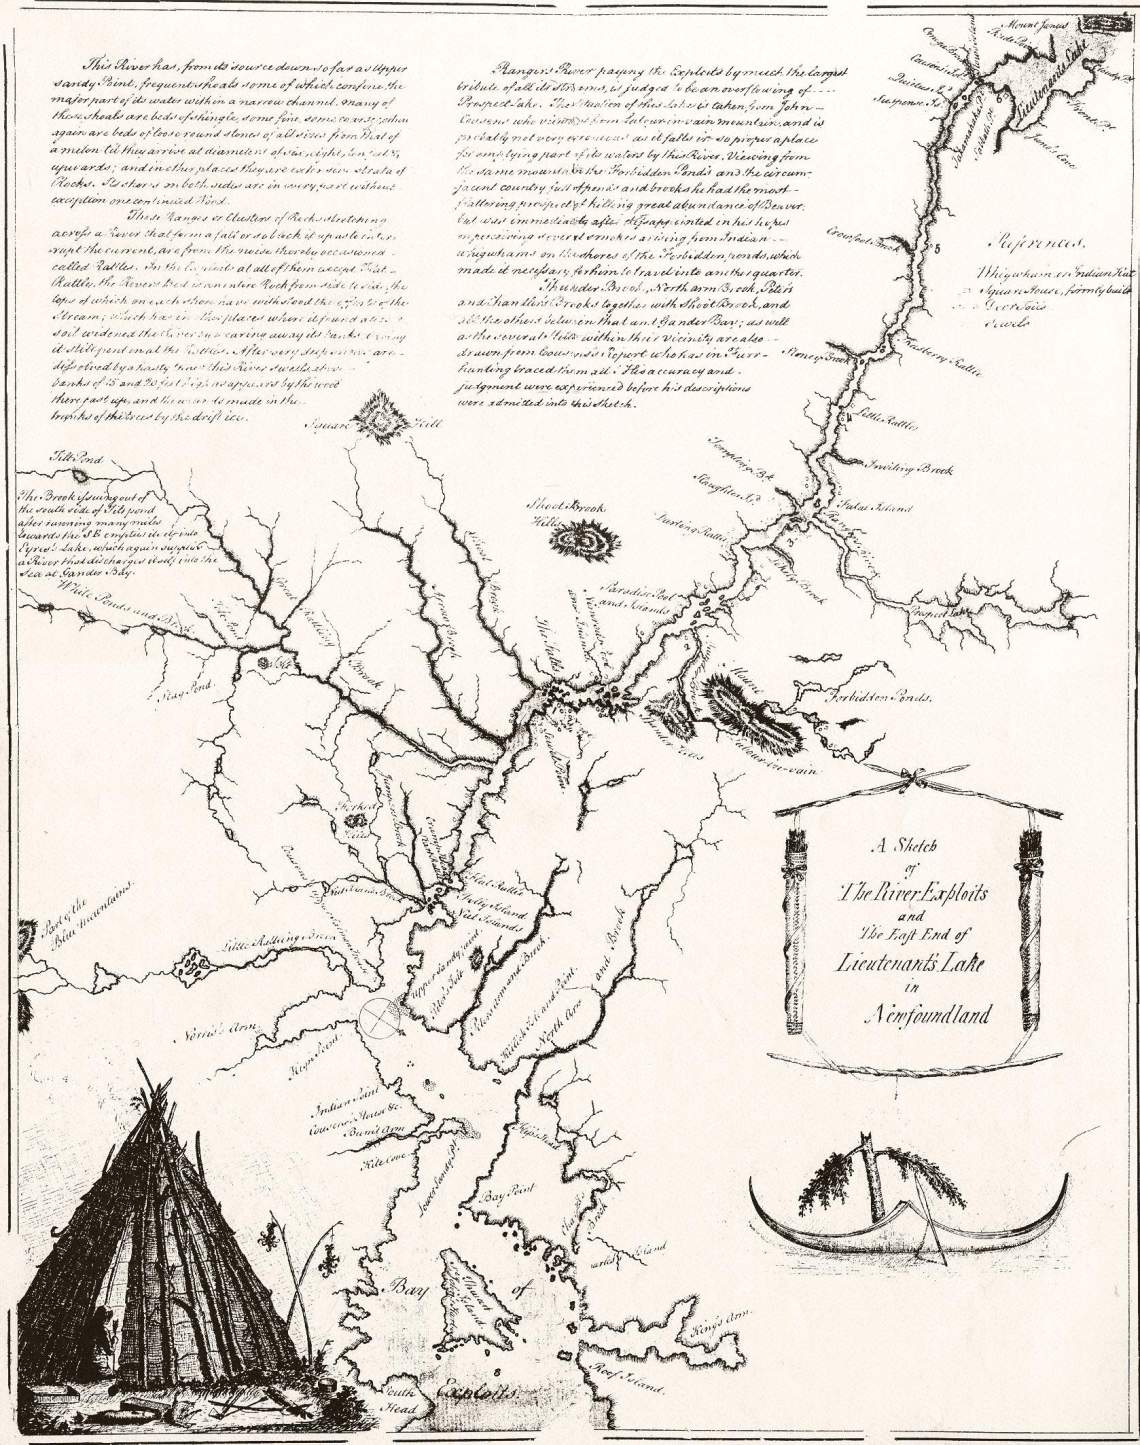 Cartwright's Map of the Exploits River Circa 1770. Many of the place names noted here did not survive into the 20th Century, some like Great Rattling Brook did. (Source: http://www.heritage.nf.ca/exploration/river_large.html)